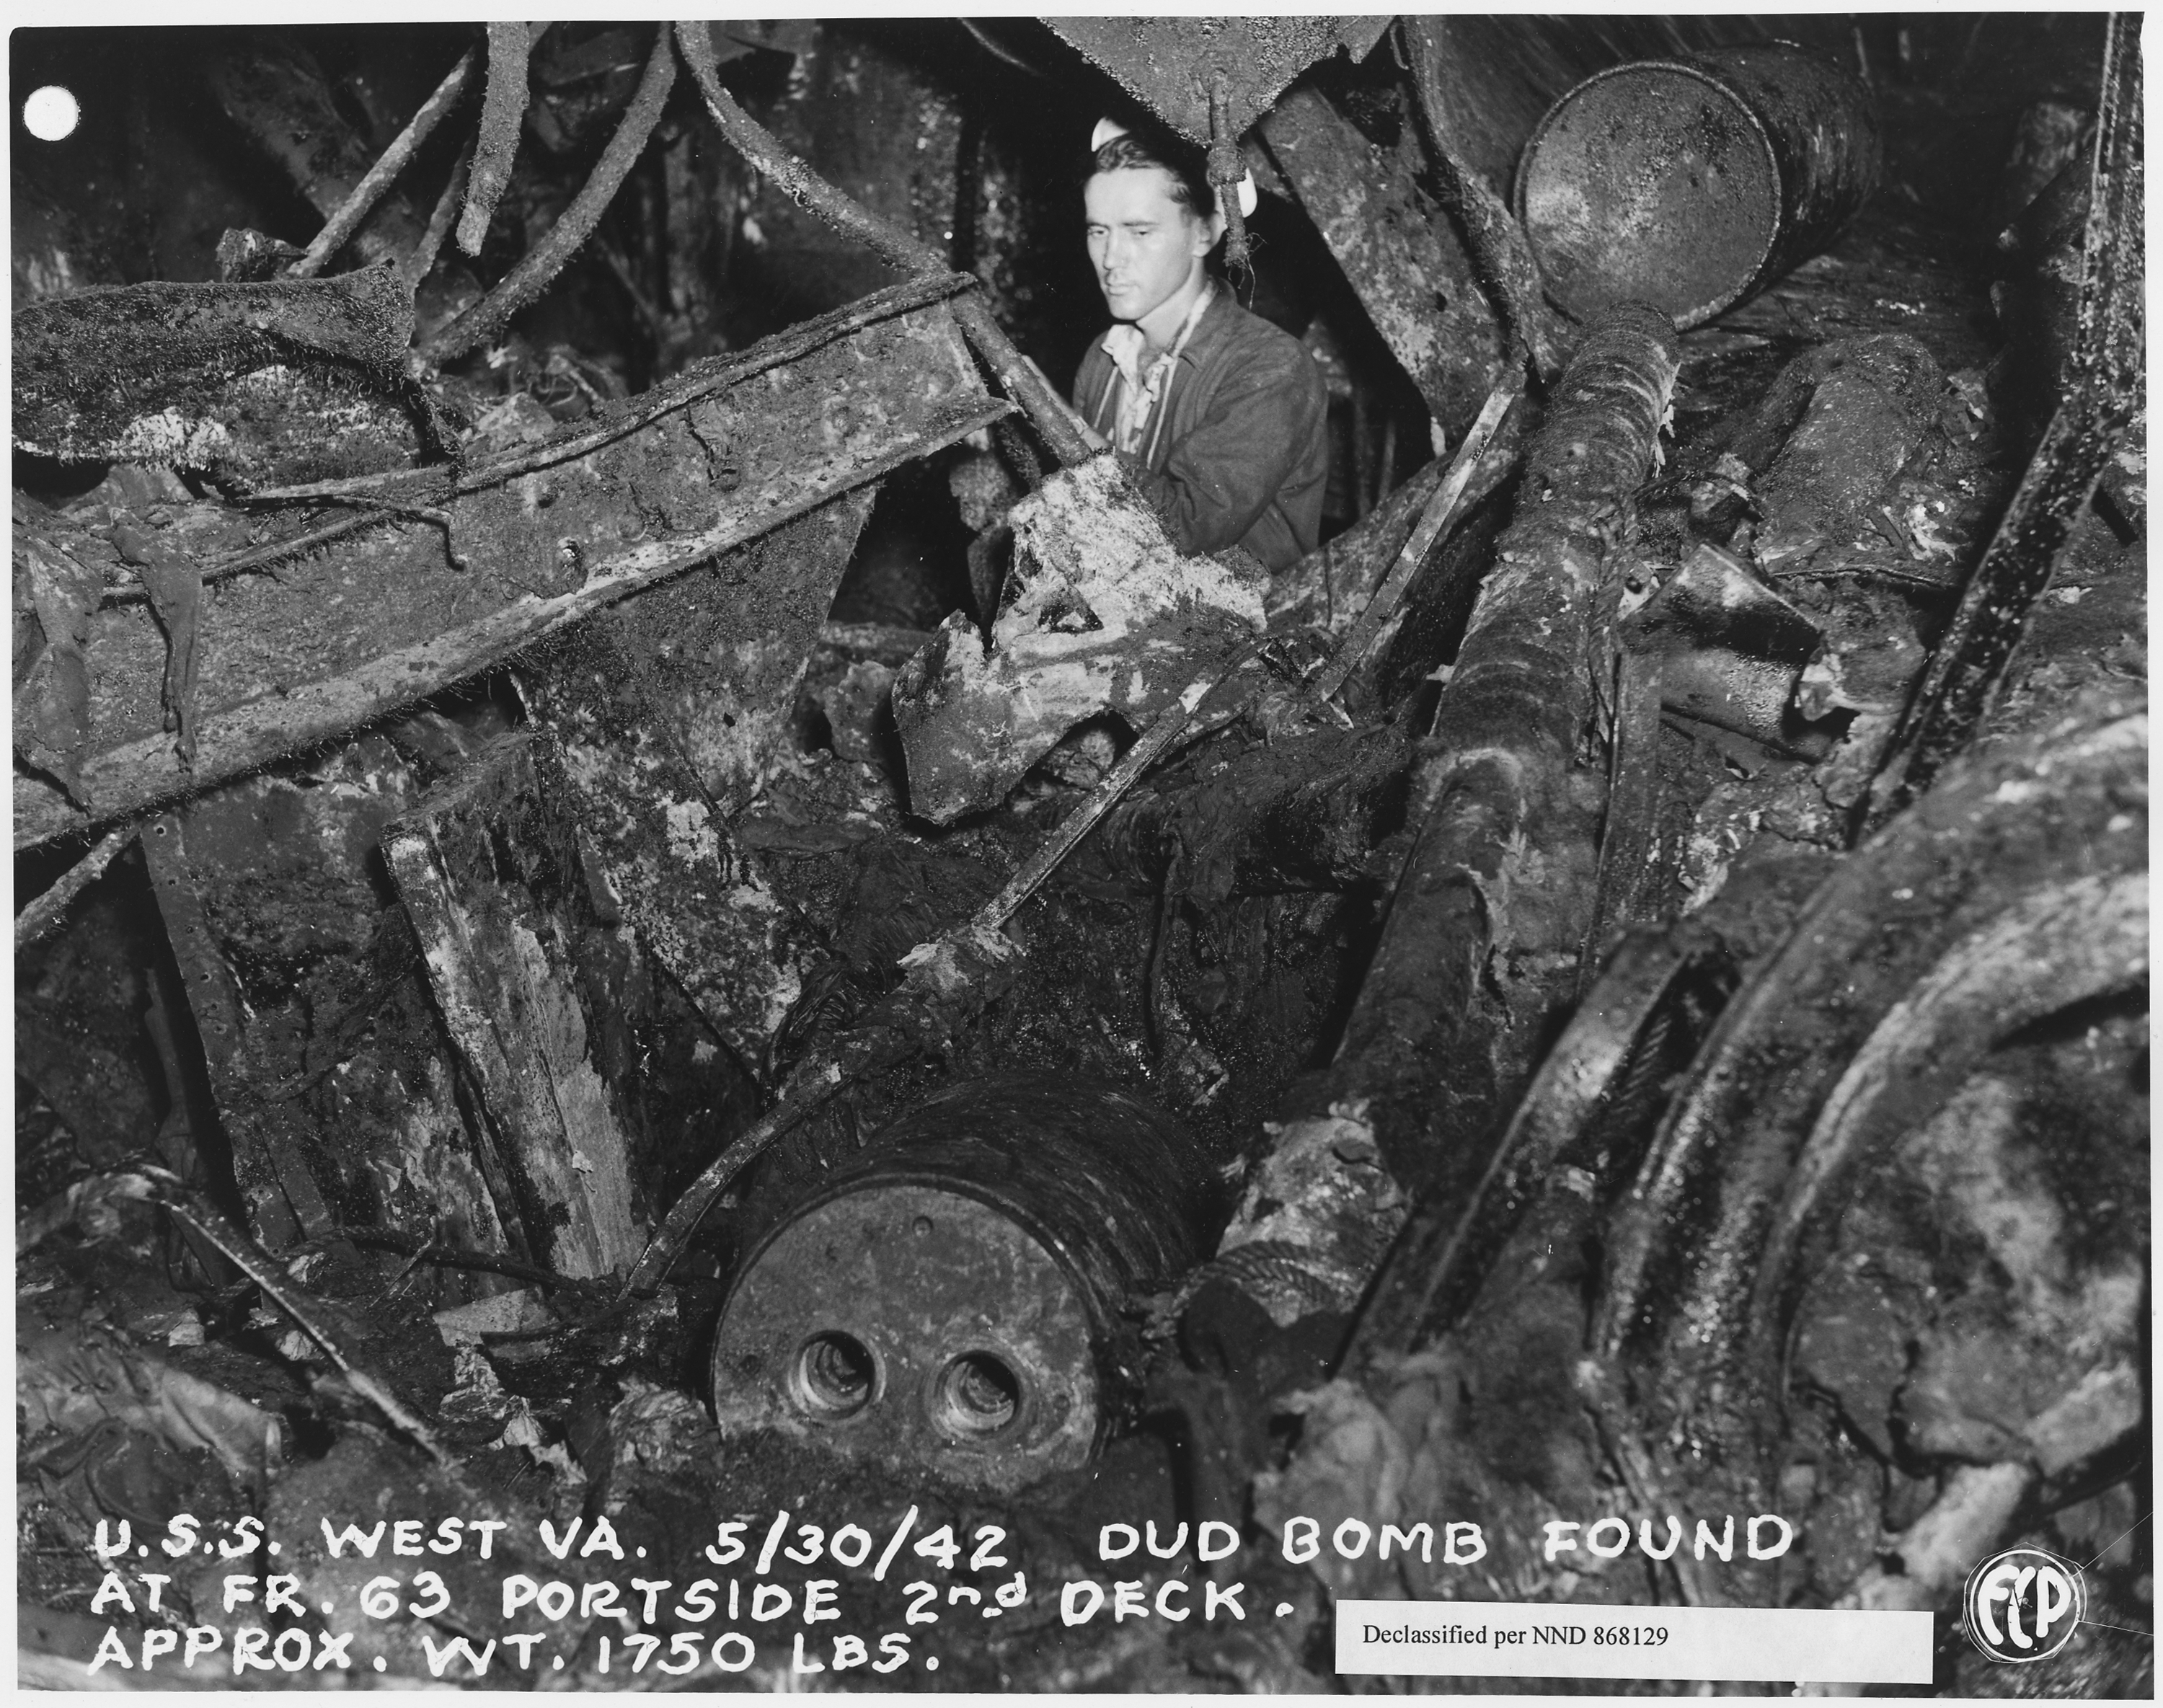 USS_West_Virginia_5-30-42,_Dud_bomg_found_at_Fr._63_Portside_2nd_deck._Approx._weight_1750_lbs._(FCP)_-_NARA_-_296916